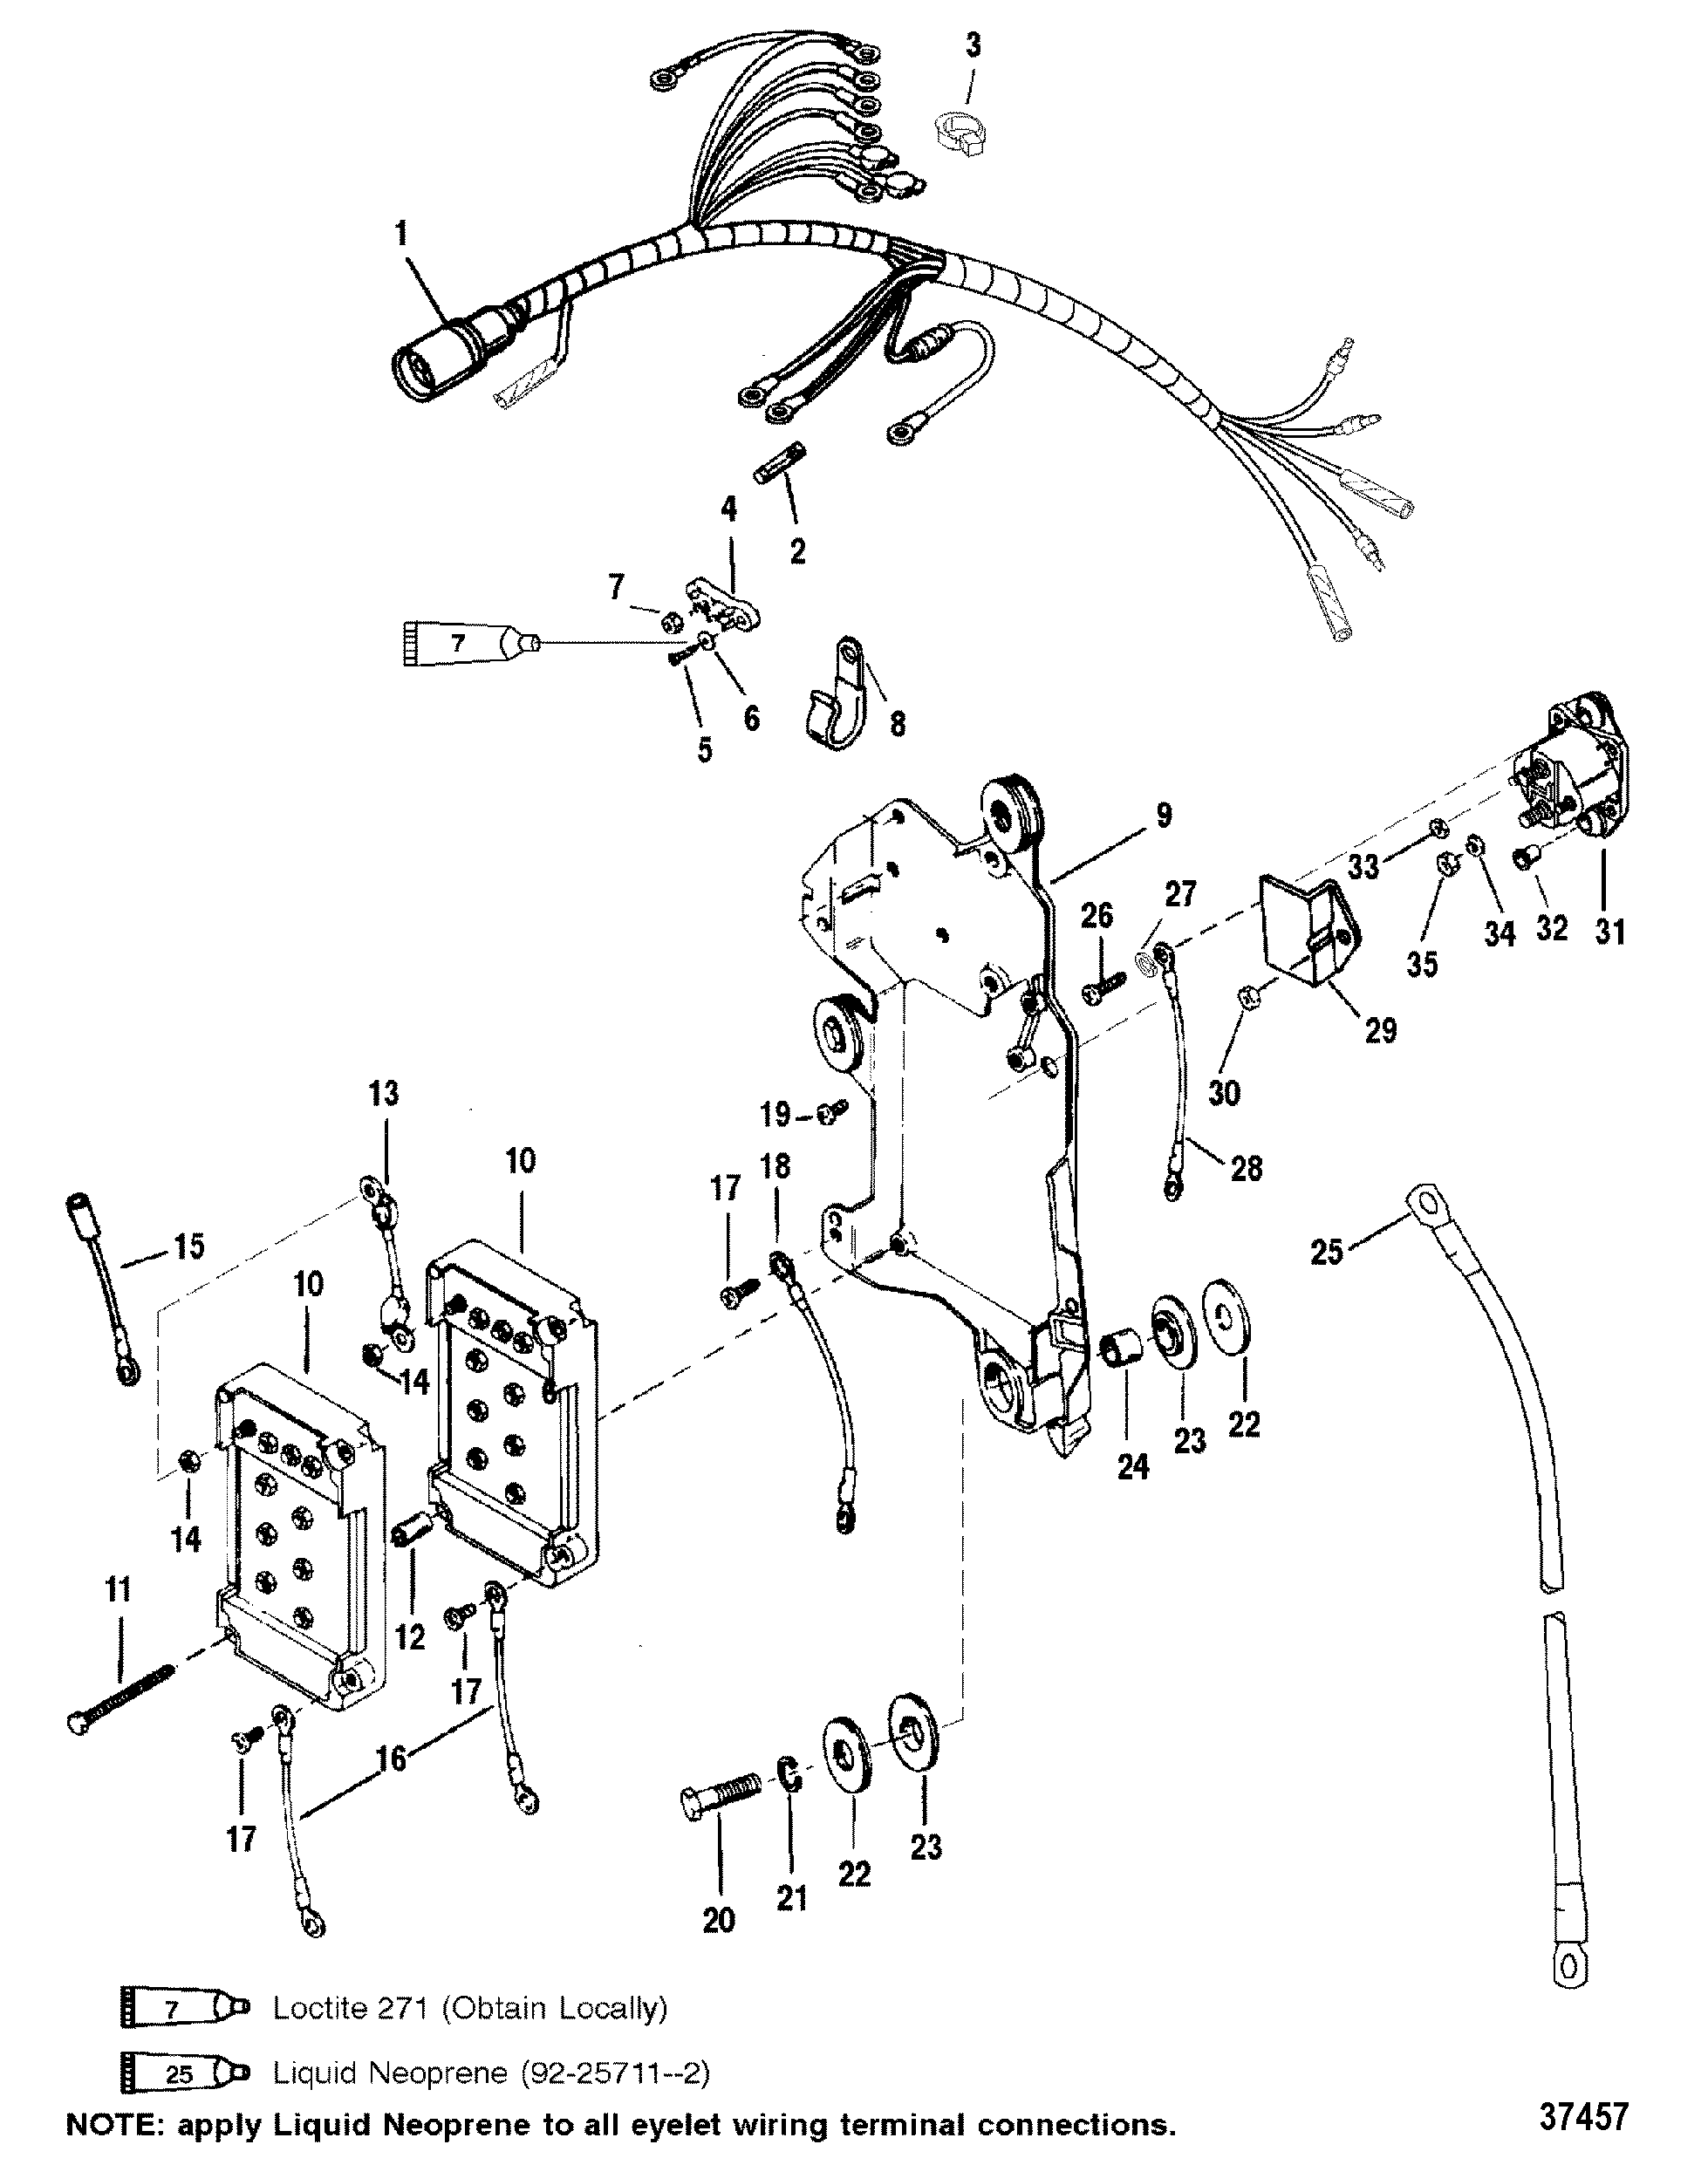 37457 wiring harness starter solenoid for mariner mercury 150 175 200 efi mercury 14 pin wiring harness diagram at metegol.co